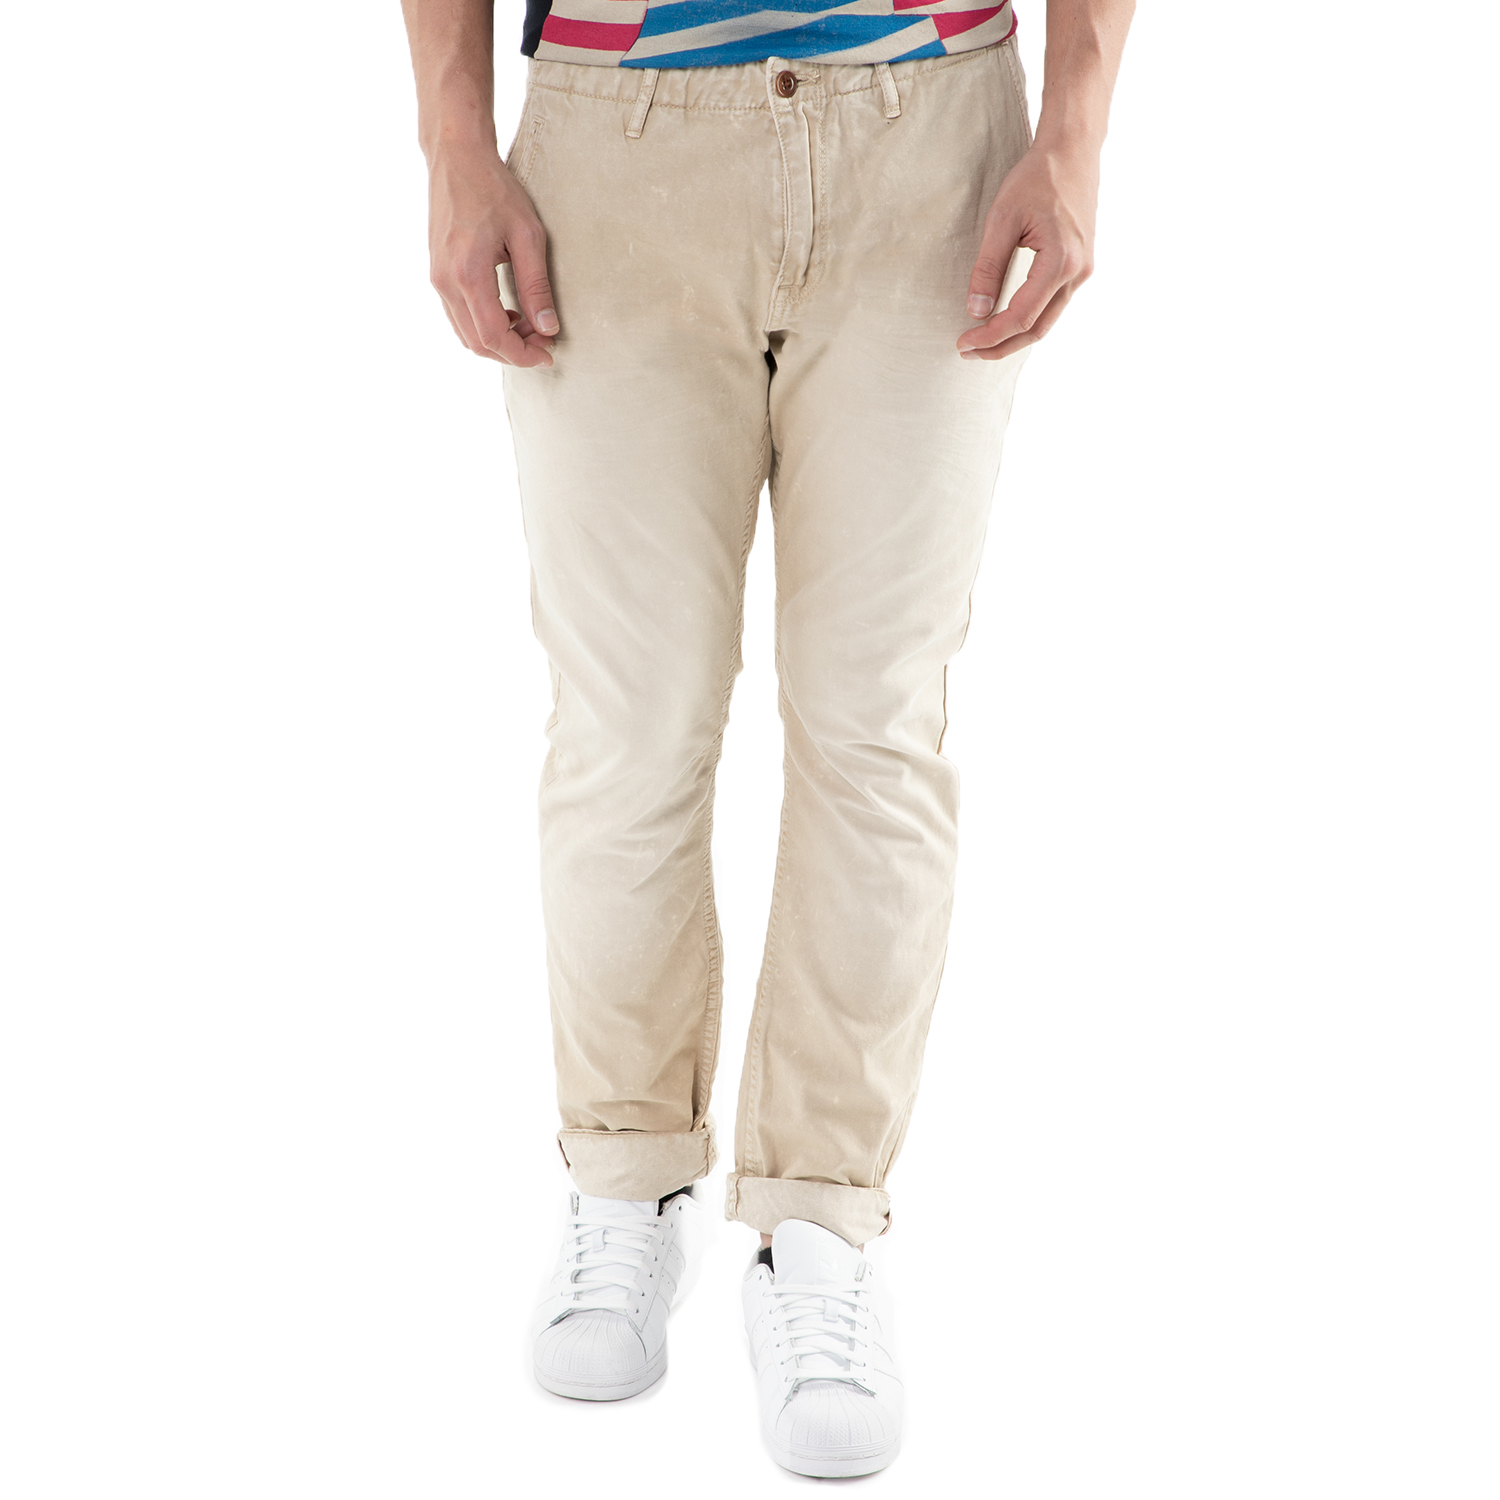 SCOTCH & SODA - Ανδρικό chino μπεζ παντελόνι Scotch & Soda Theon in garment dyed